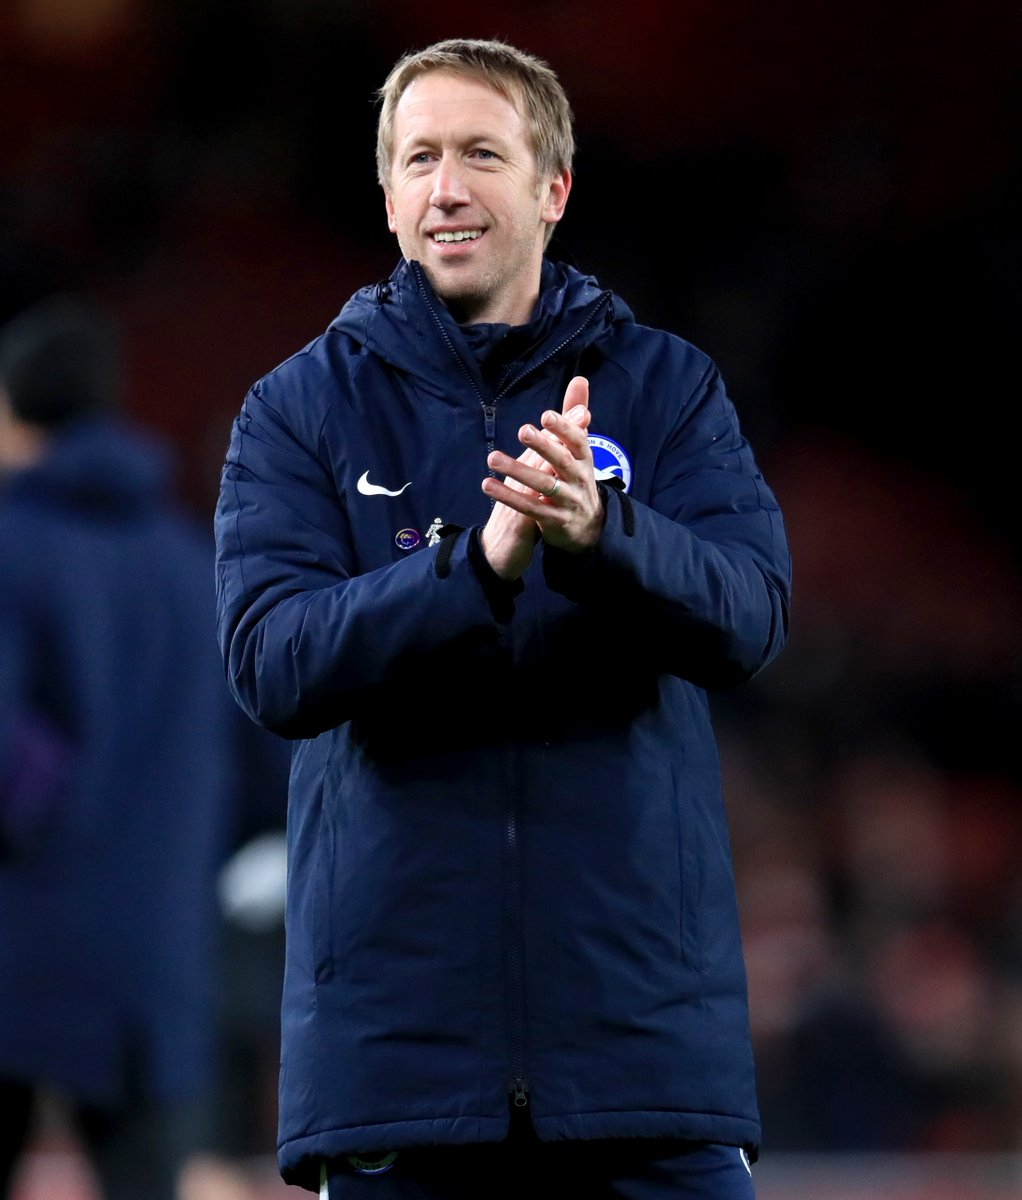 Graham Potters two games at the Emirates Stadium as a manager: ✅ Arsenal 1-2 Östersund ✅ Arsenal 1-2 Brighton Potter with the magic again. 🧙♂️